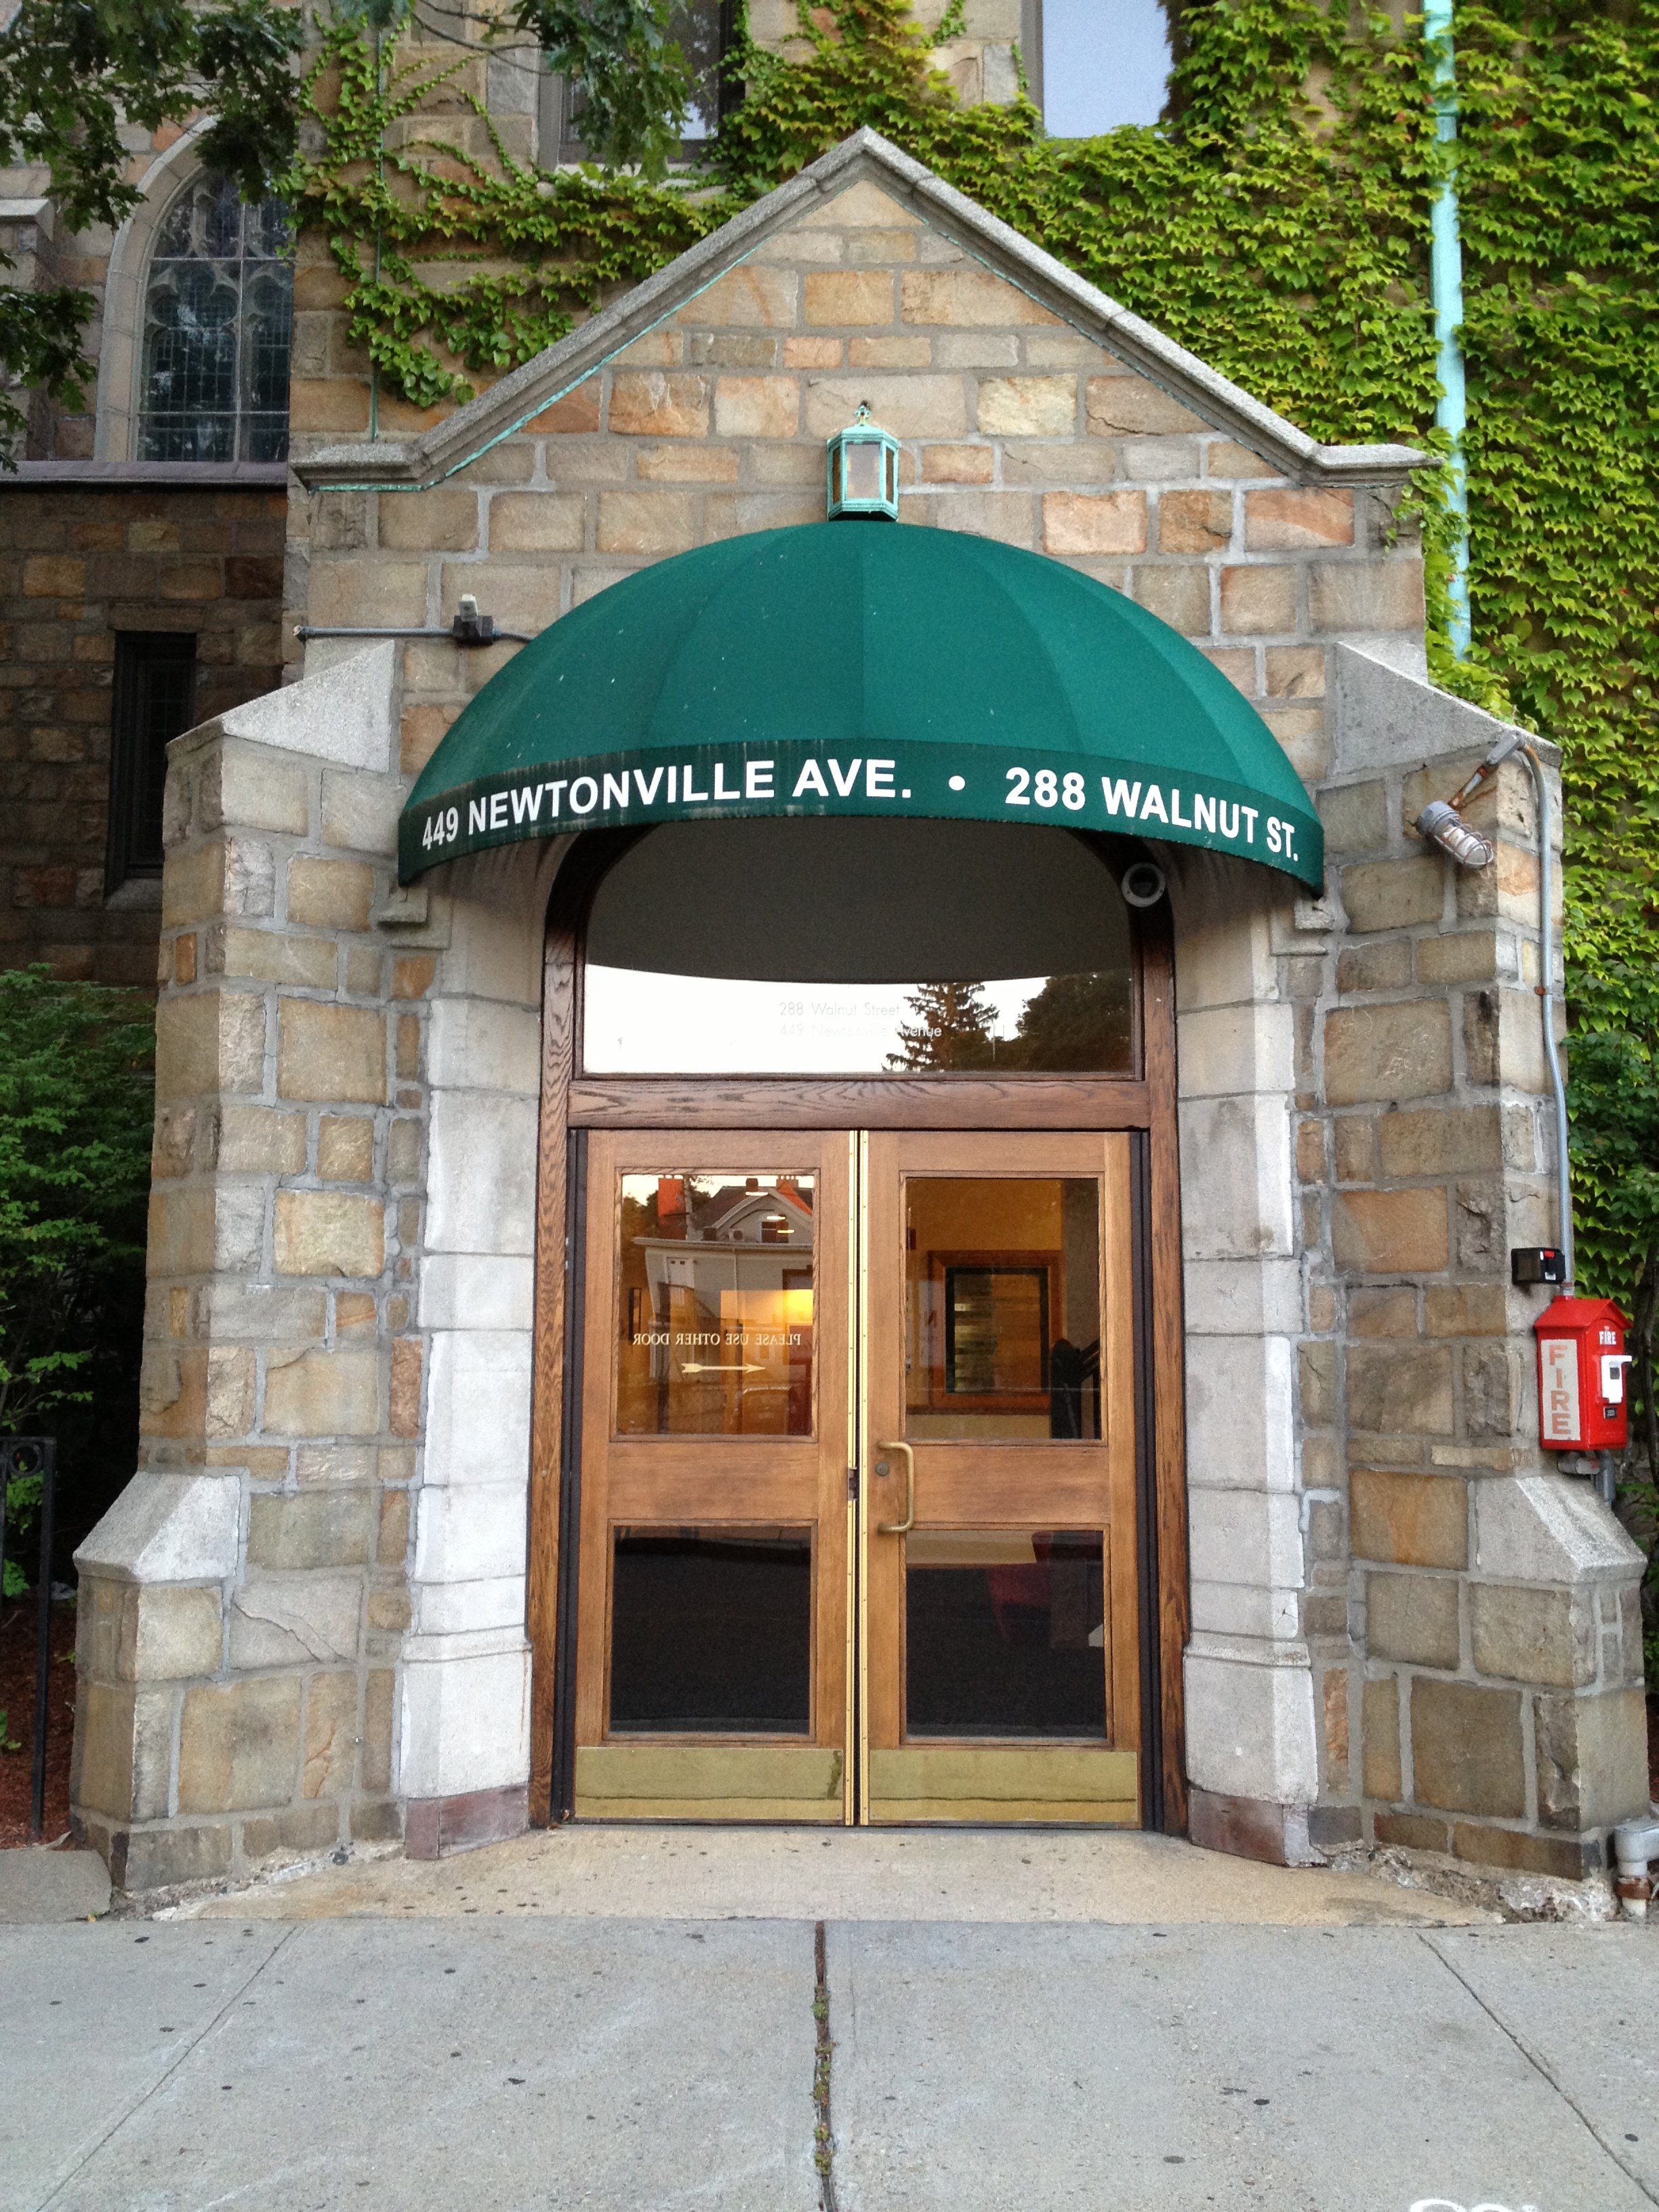 Our building entrance is on Newtonville Ave.